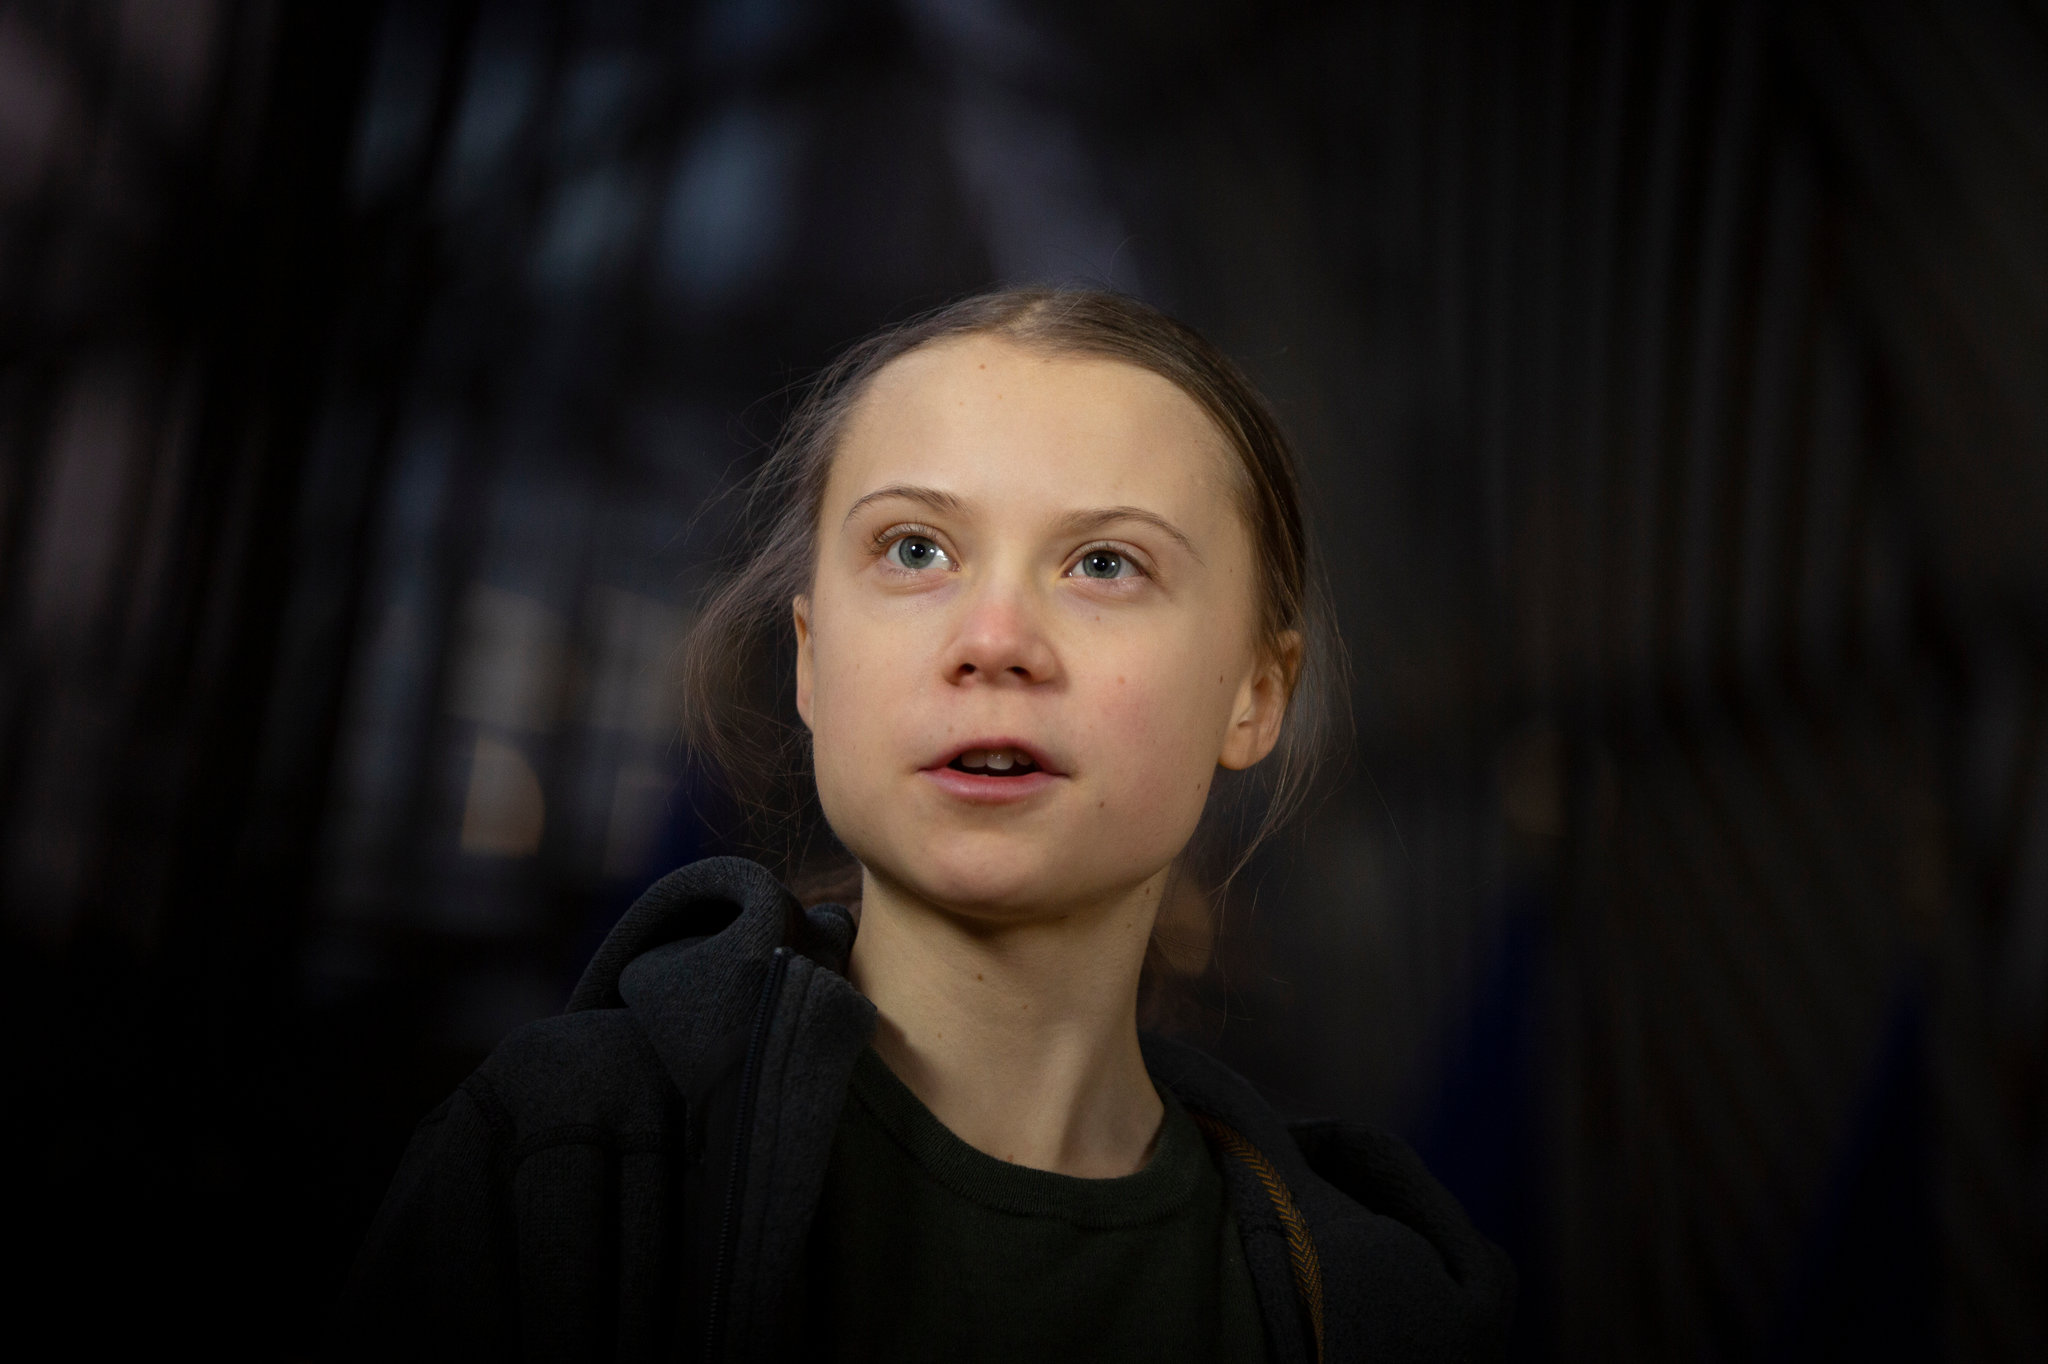 Greta Thunberg - How Her Fight Against Climate Change Helped Her Overcome Depression